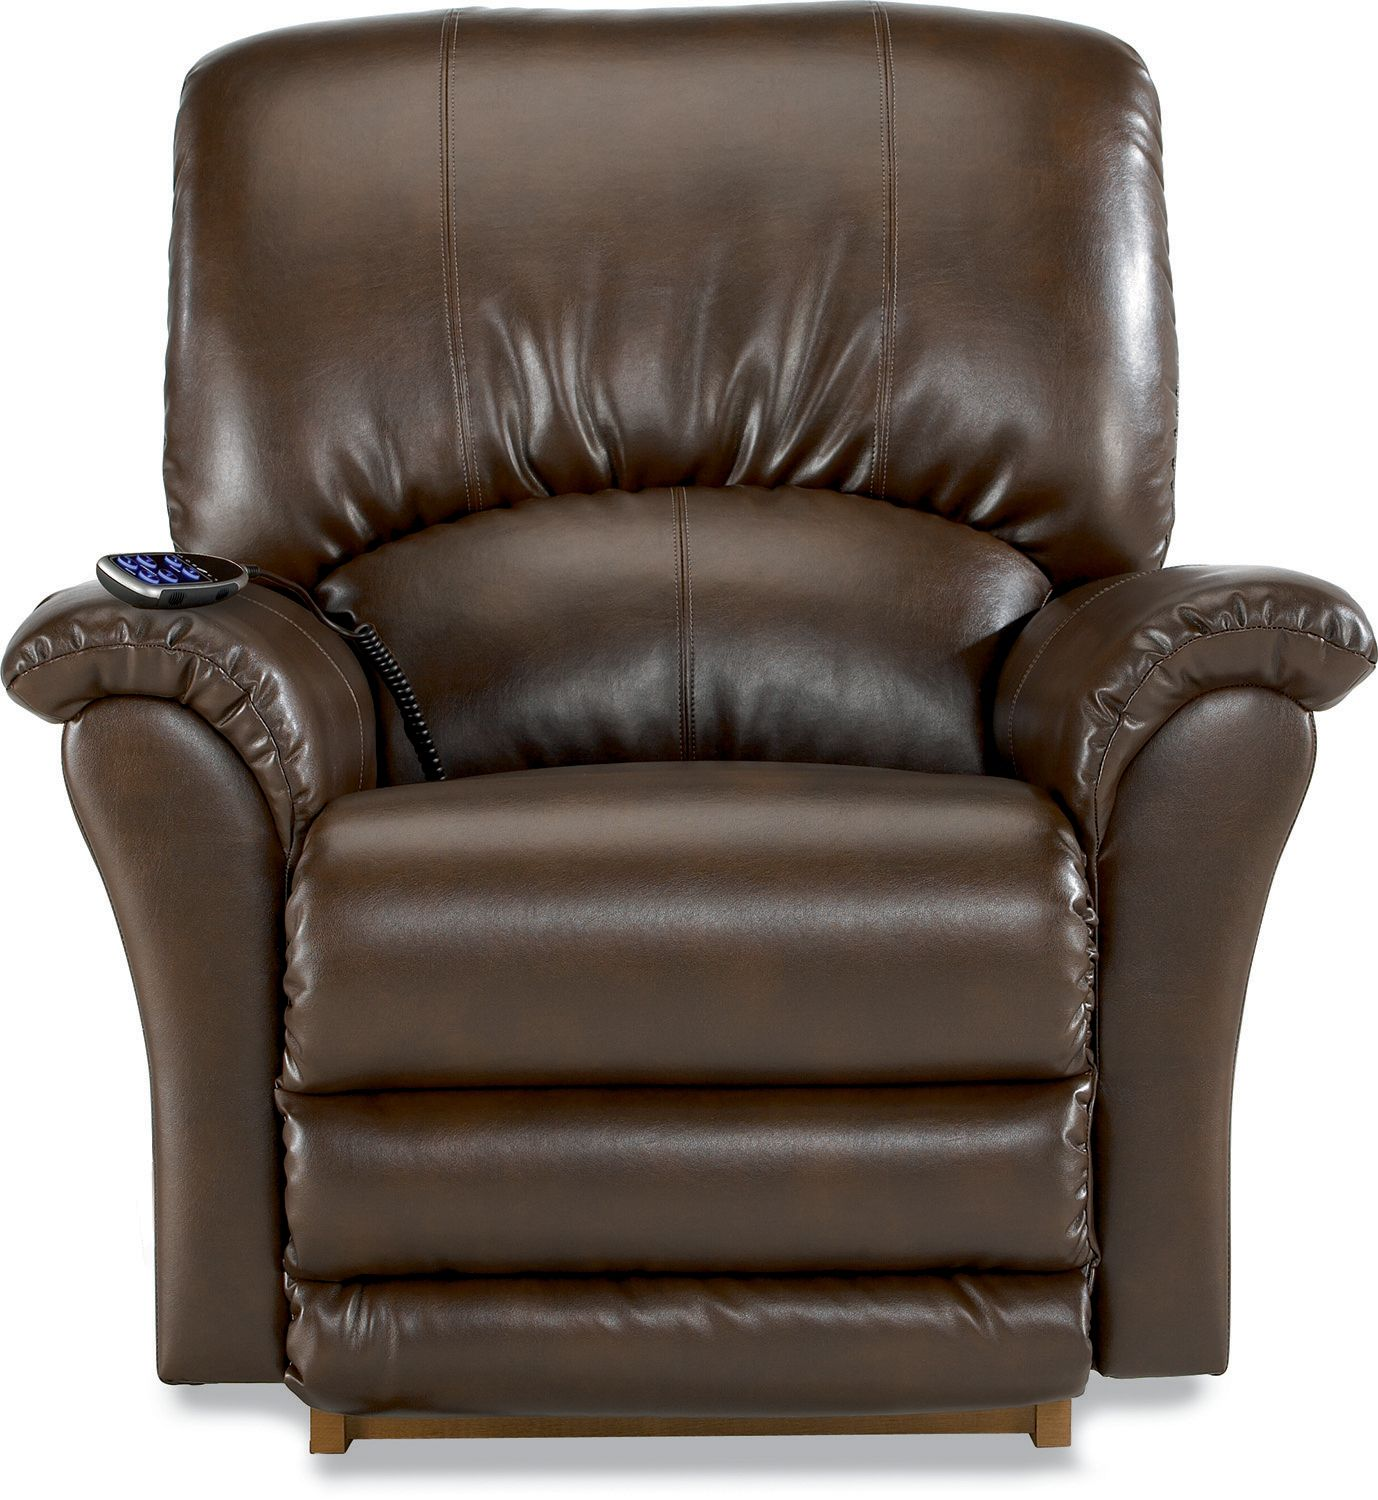 La-Z-Boy Cantina Power Recliner